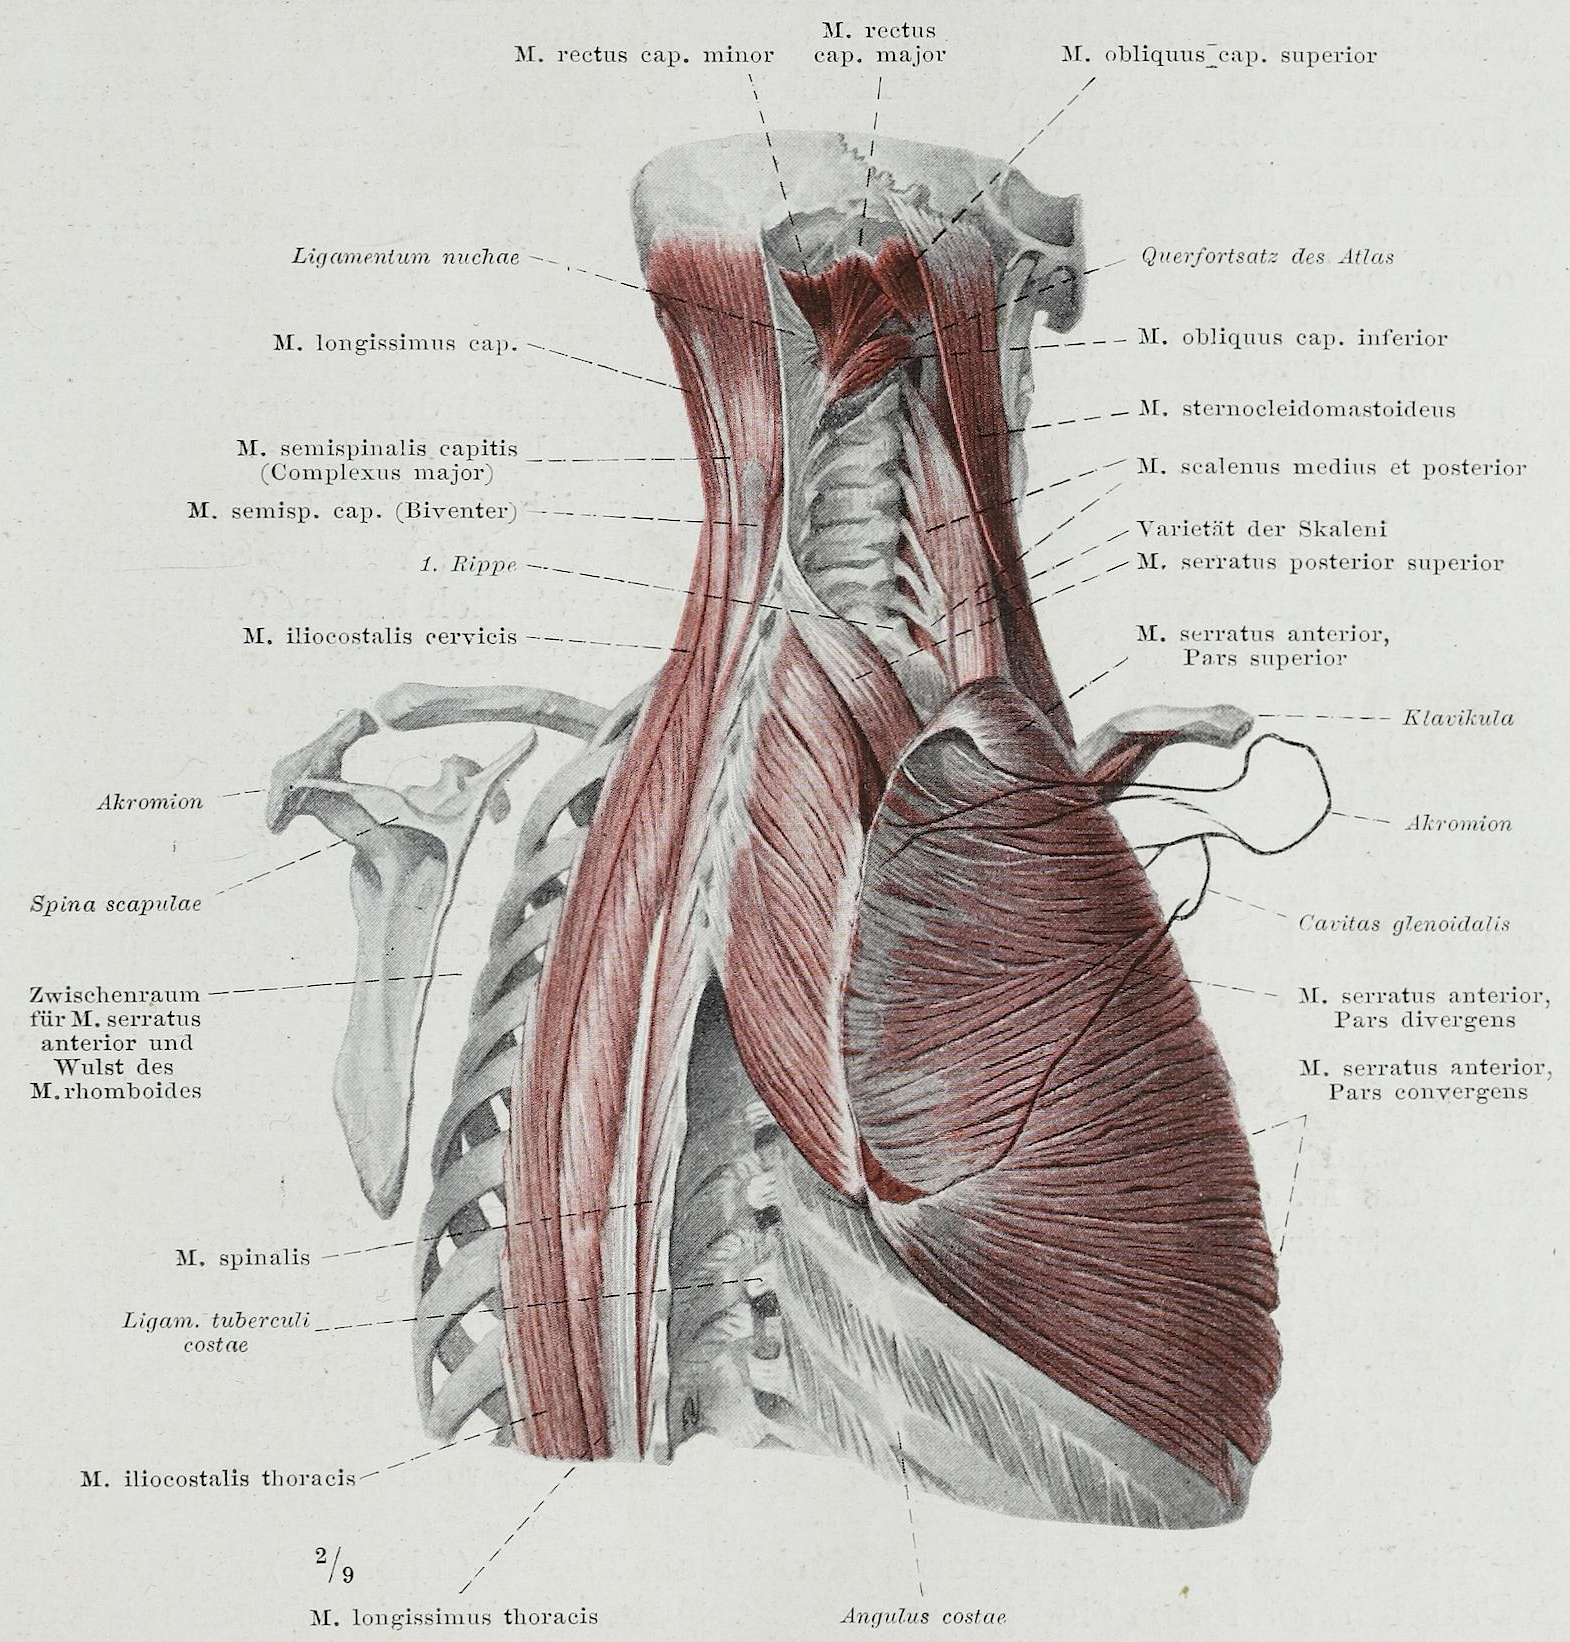 File:Braus 1921 140.png - Wikimedia Commons